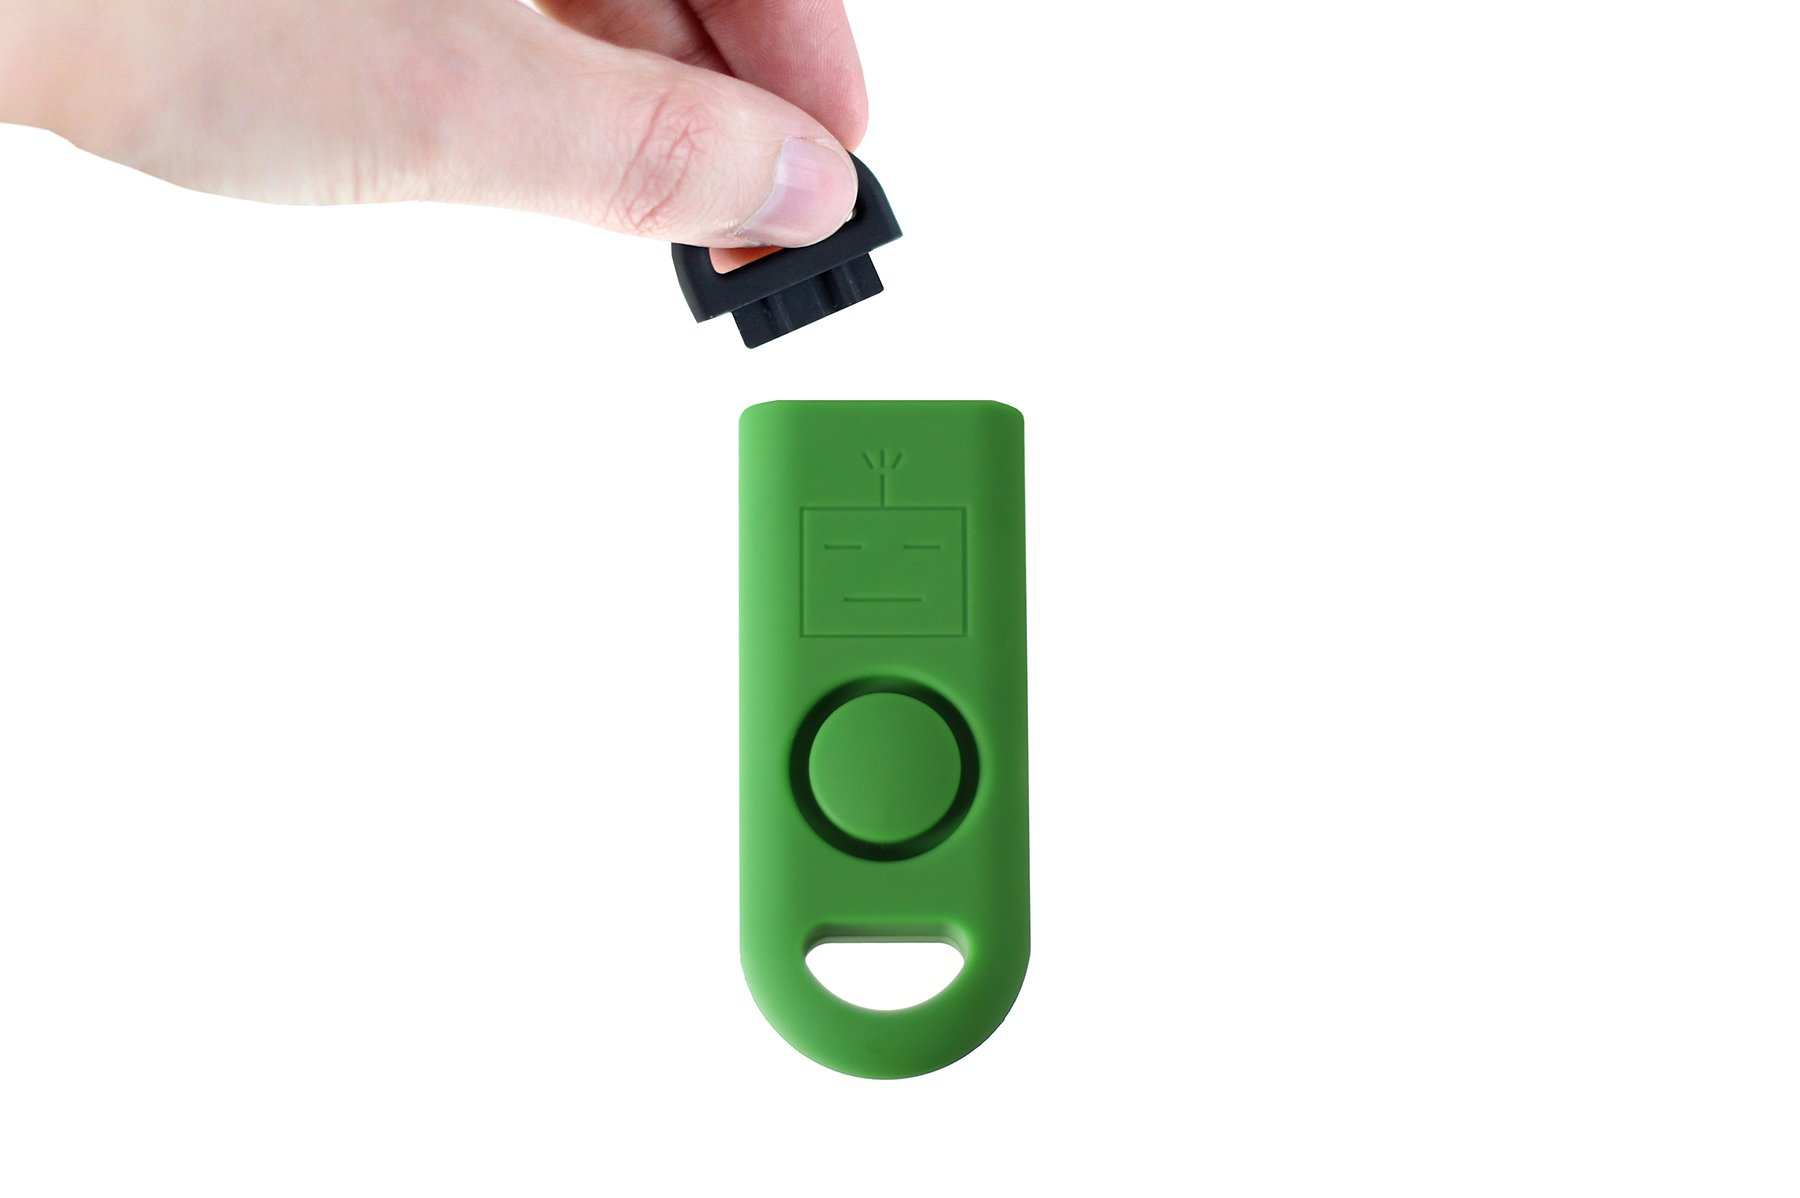 B A S U eAlarm+ with Tripwire Hook, Emergency Personal Alarm, Battery Included, Carabiner Included, Ranger Green by B A S U